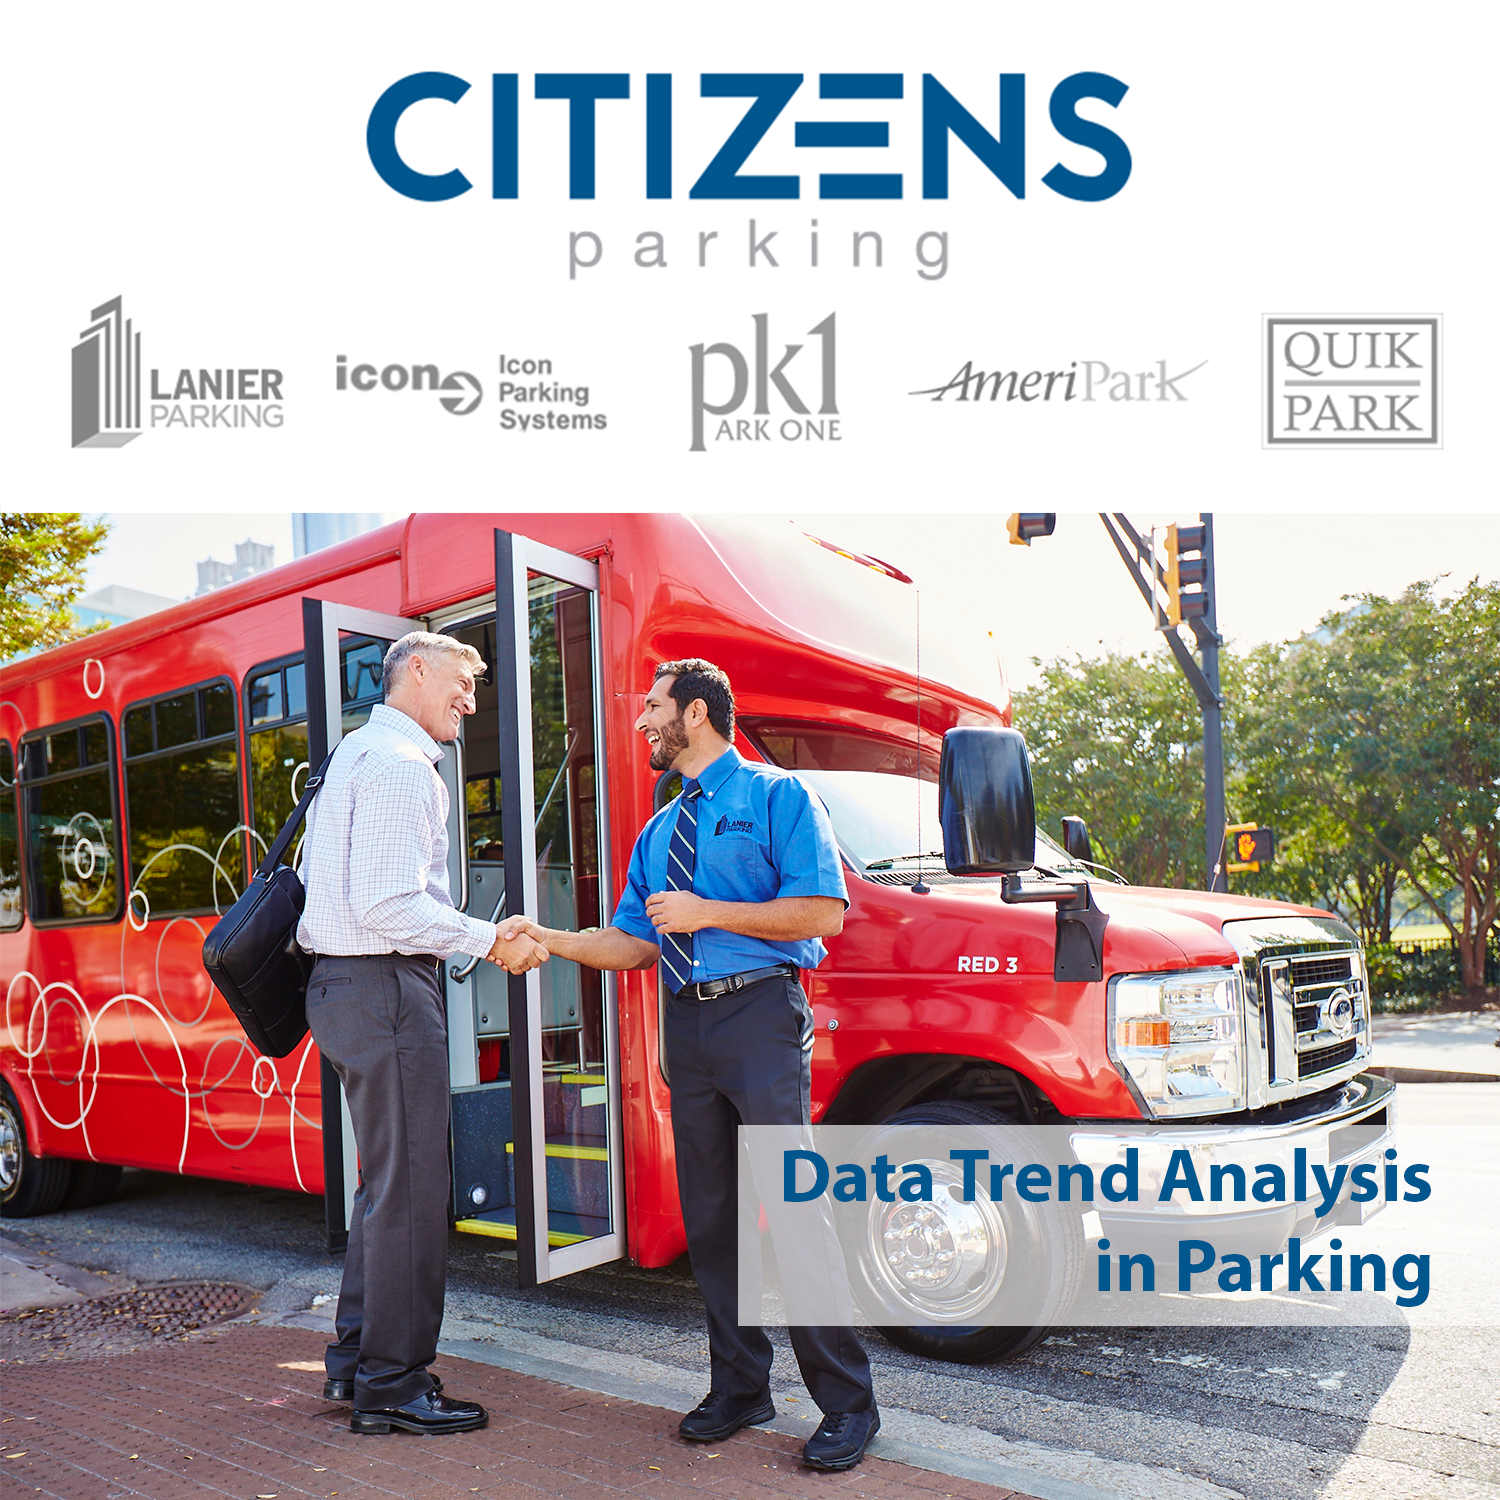 Data Trend Analysis in Parking